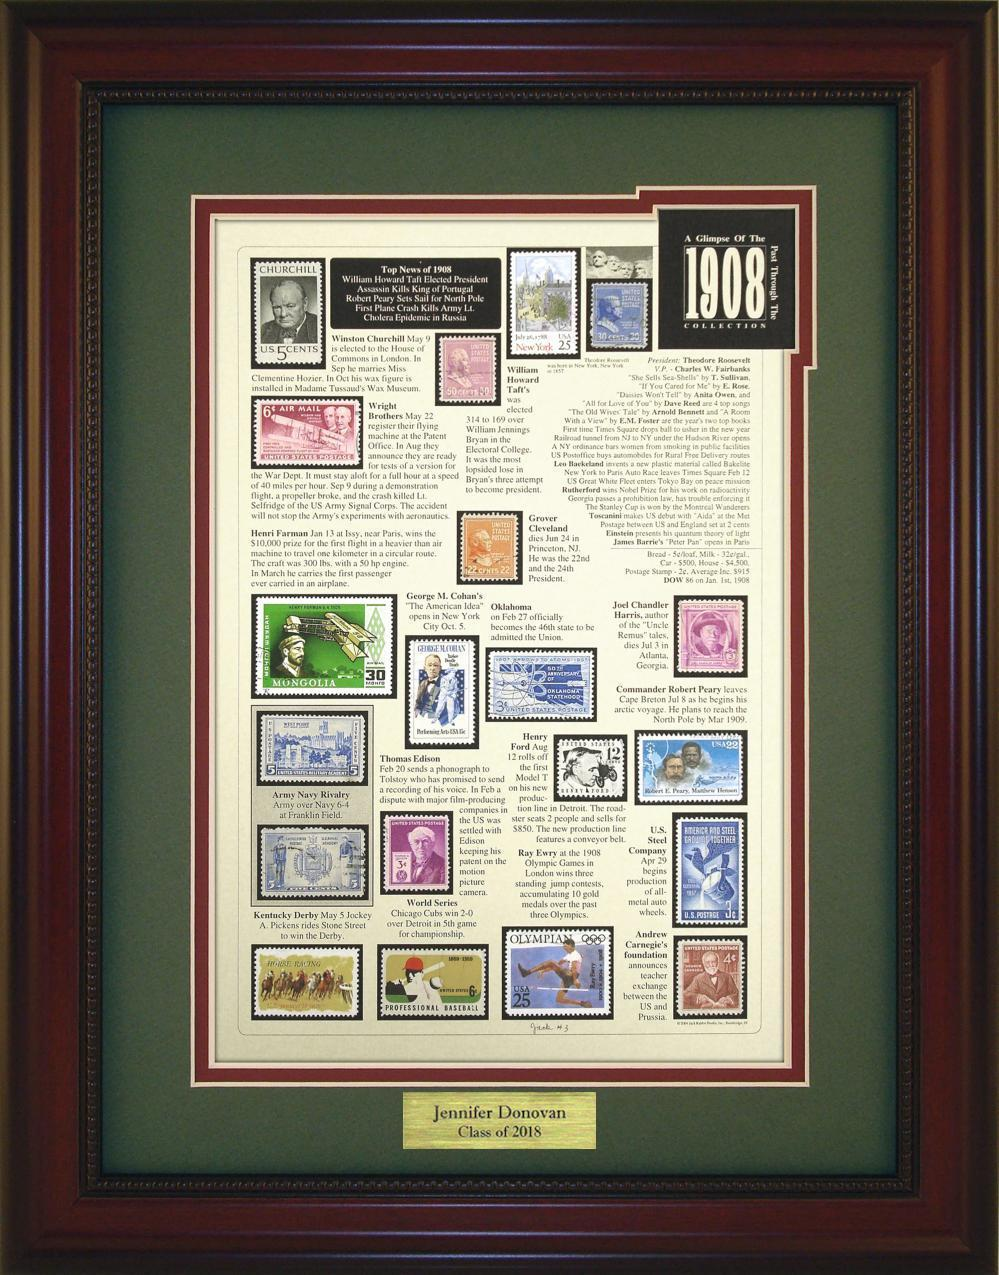 Year 1908 - Personalized Unique Framed Gift